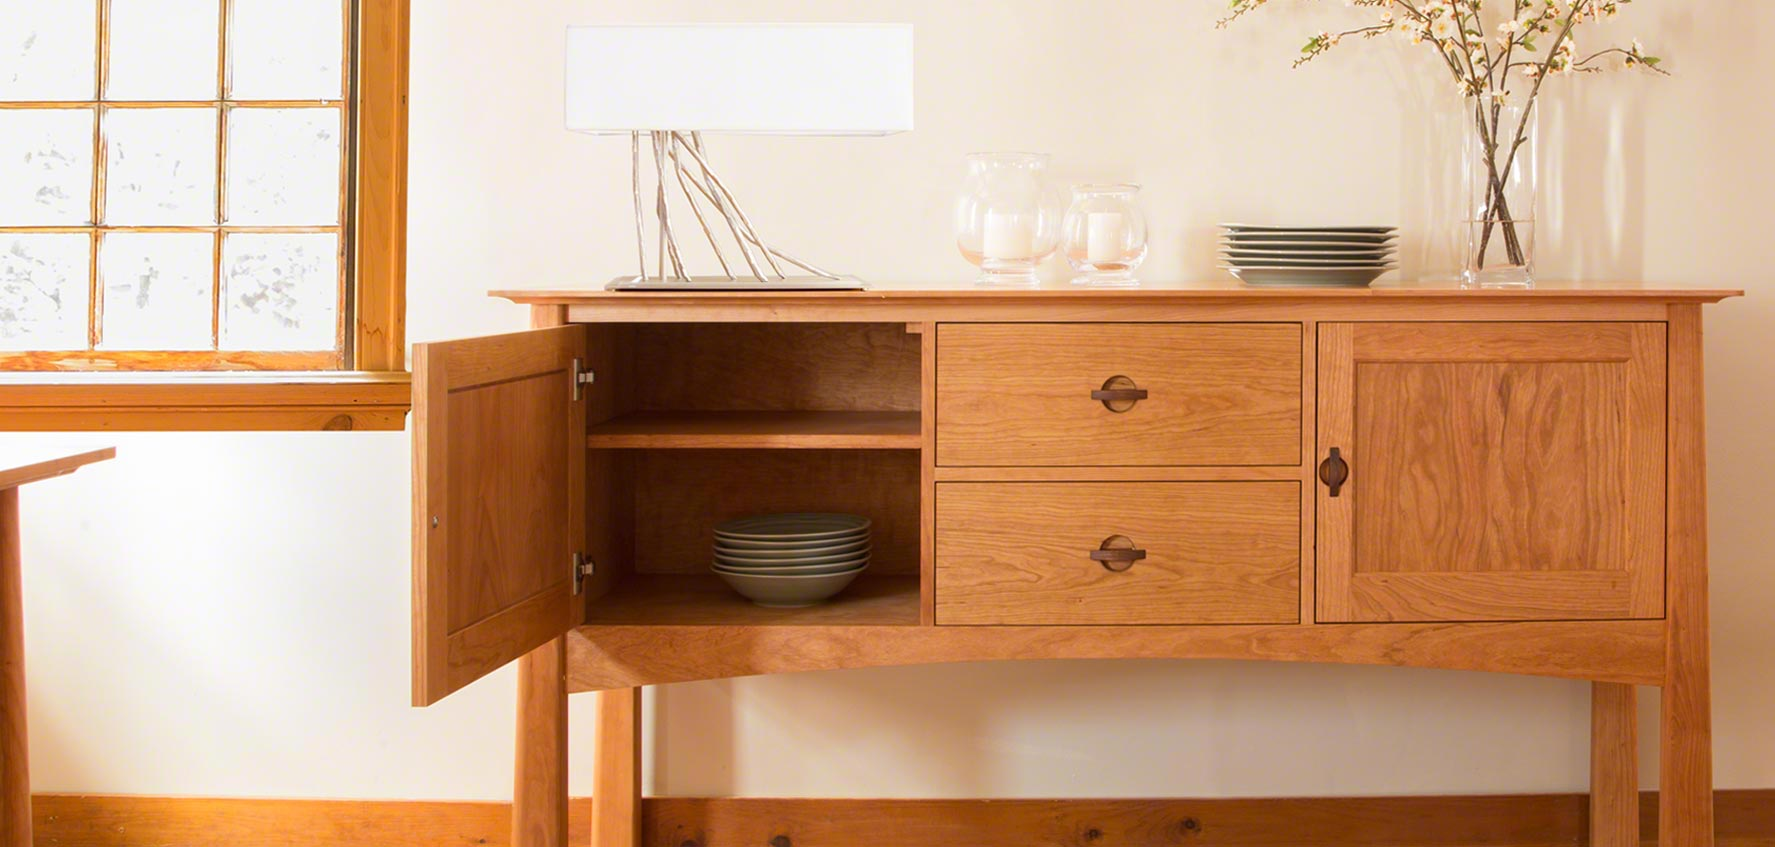 Designer Sideboards Handcrafted Wood Buffets Sideboards Vermont Woods Studios